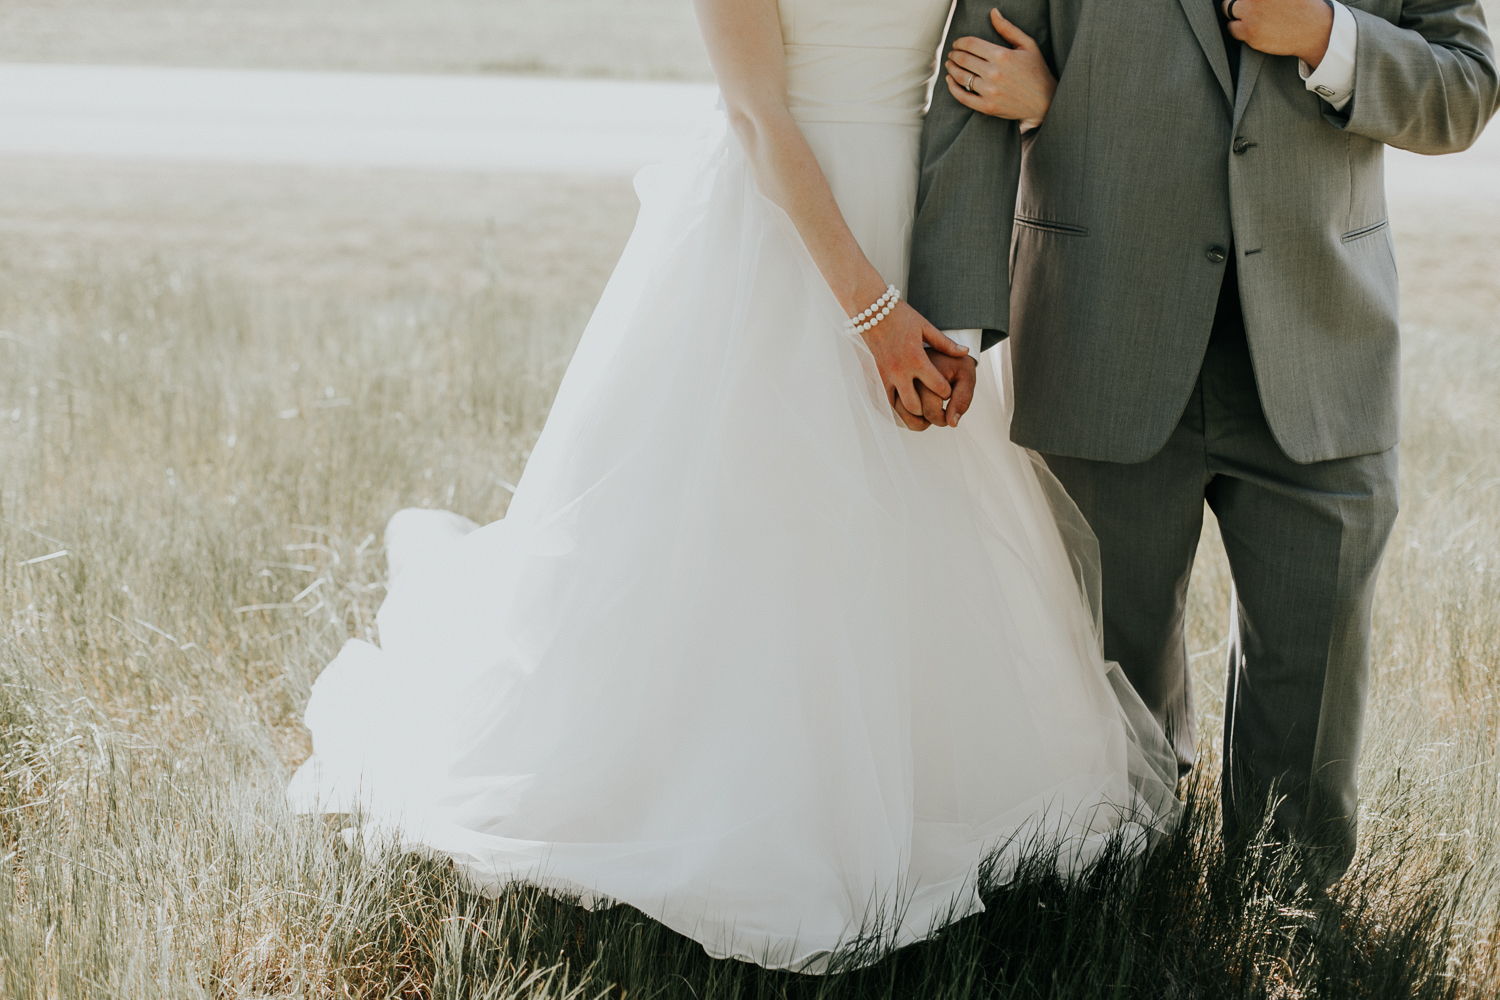 lethbridge-wedding-photographer-love-and-be-loved-photography-dan-tynnea-picture-image-photo-171.jpg